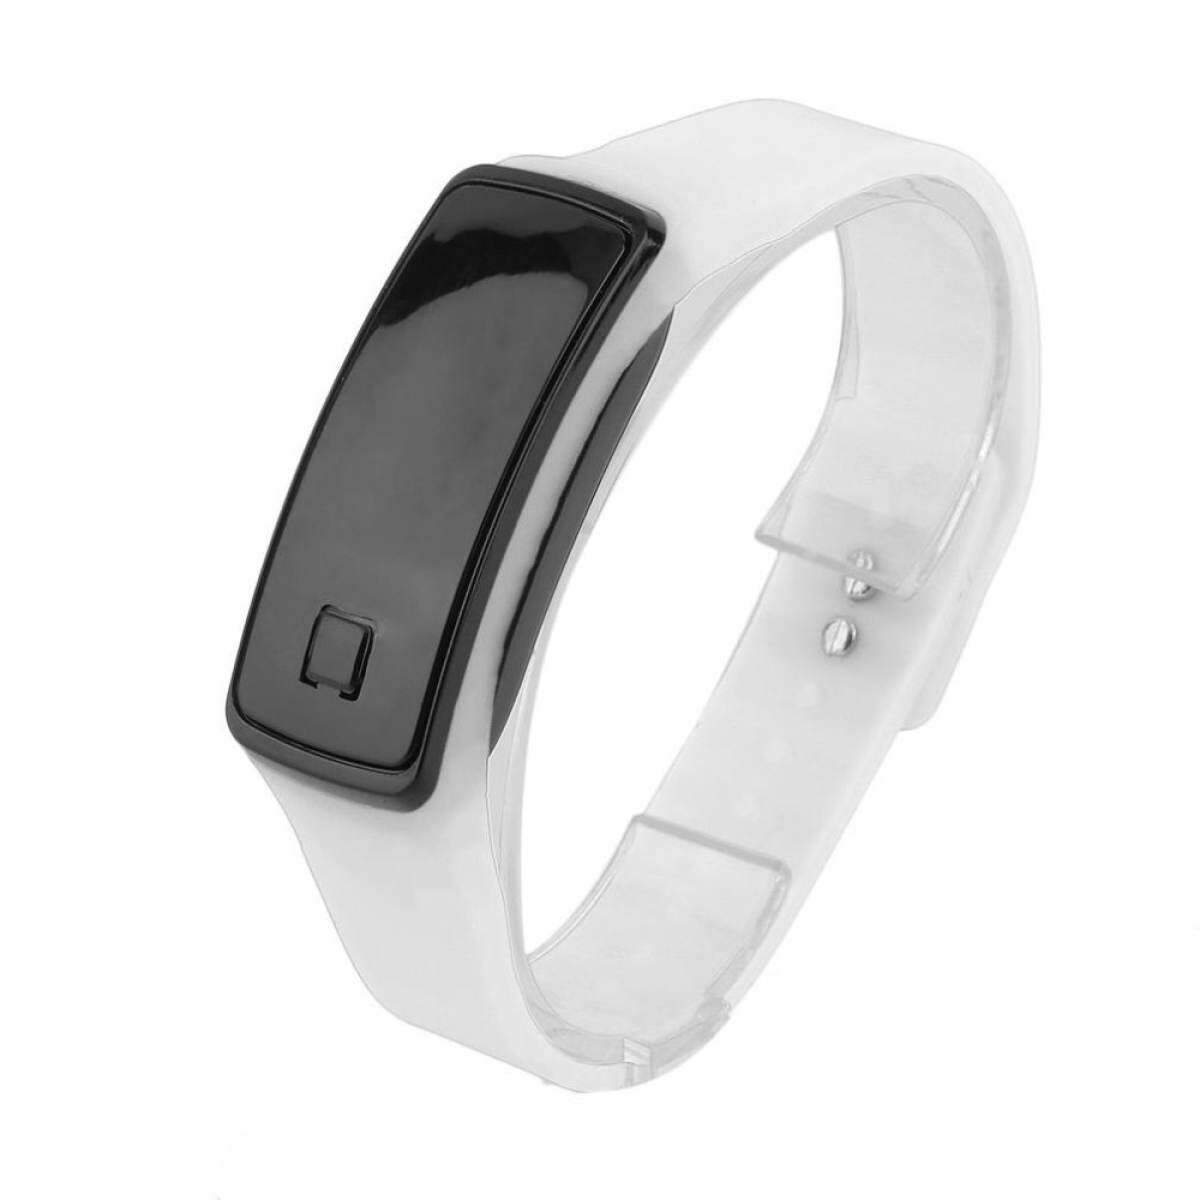 ₱740.00GOOD Super Lightweight LED Touch Sport Running Soft Silicone Smart Wristaband white. 28